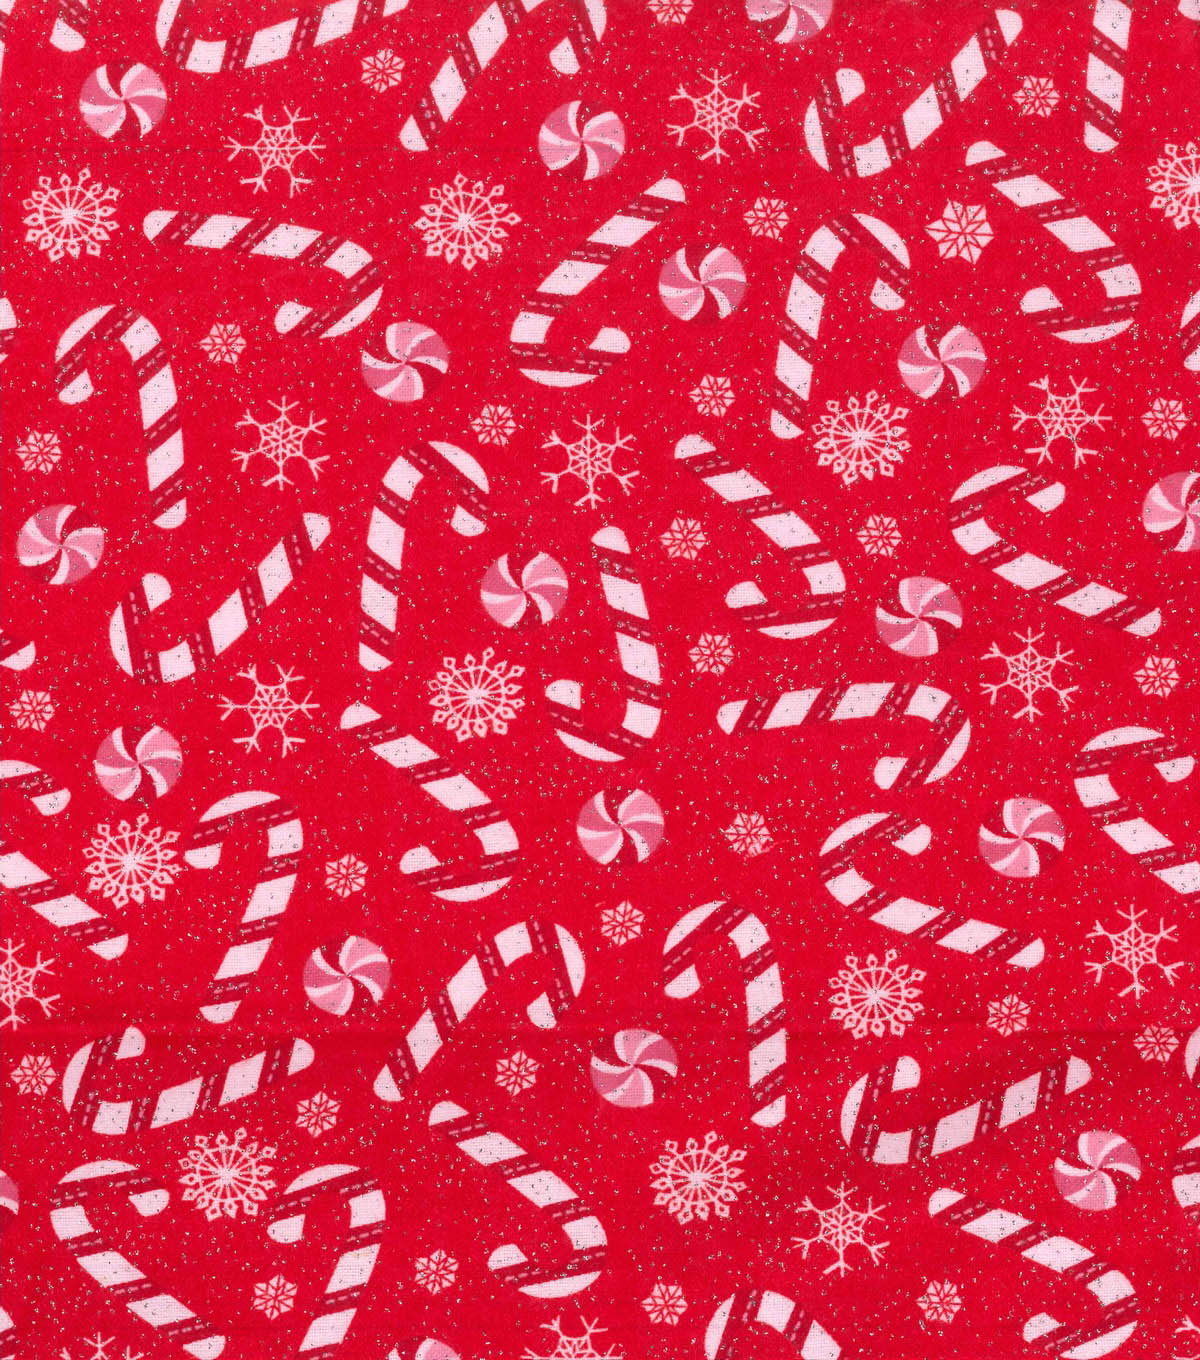 Snuggle Flannel Fabric -Candy Canes